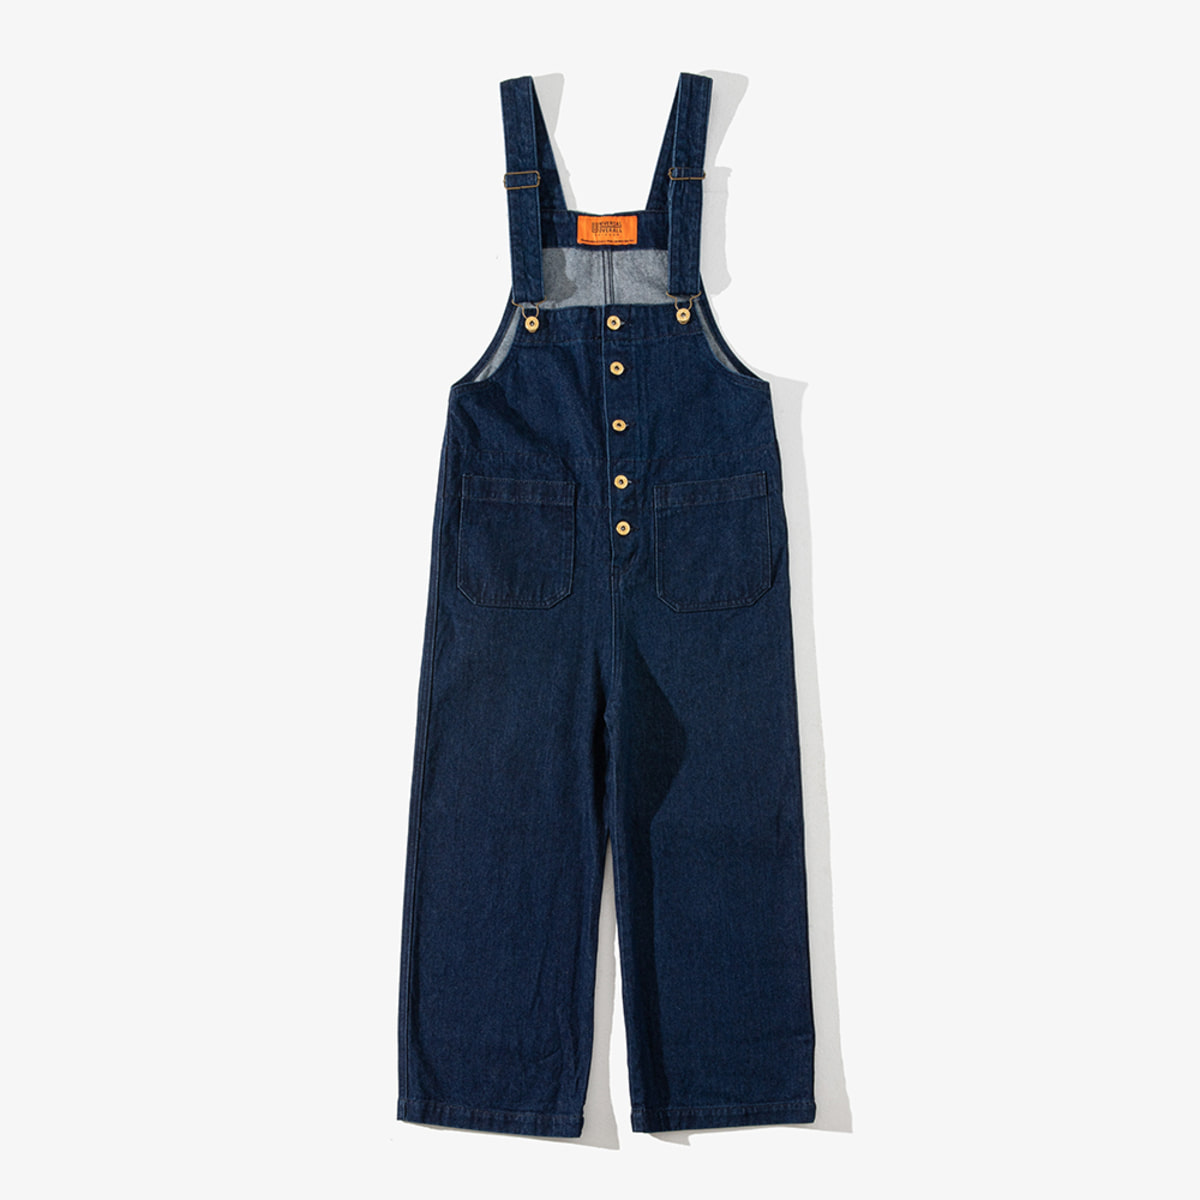 WOMENS DENIM BASIC OVERALL INDIGO